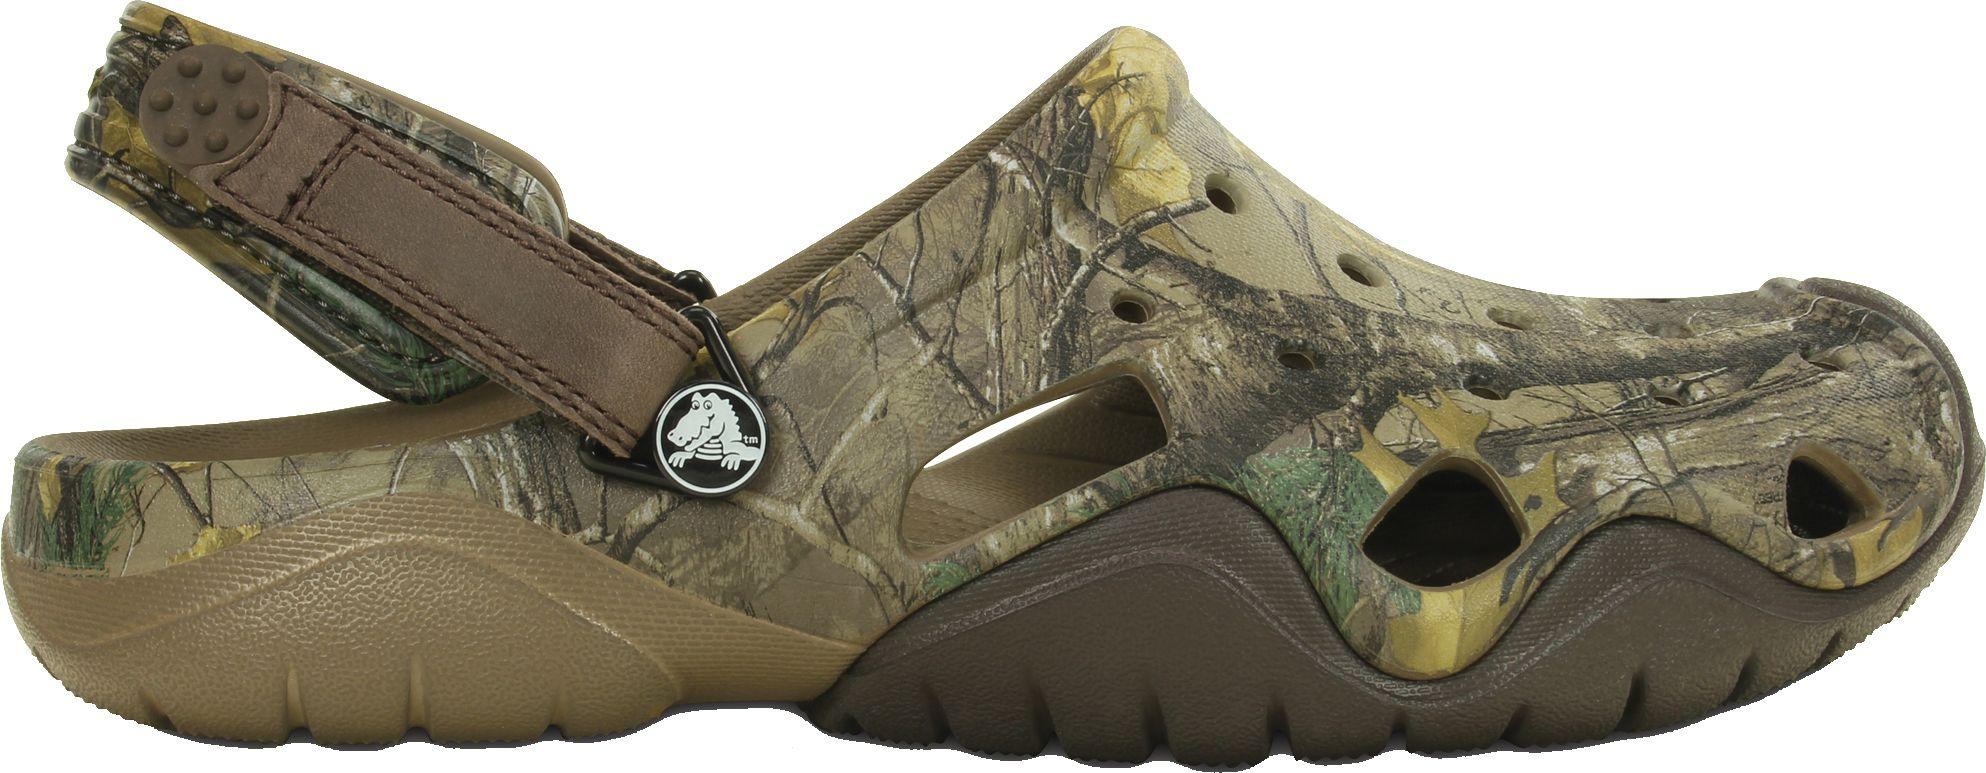 bada53ea08603 Lyst - Crocs™ Swiftwater Realtree Xtra Clogs in Green for Men